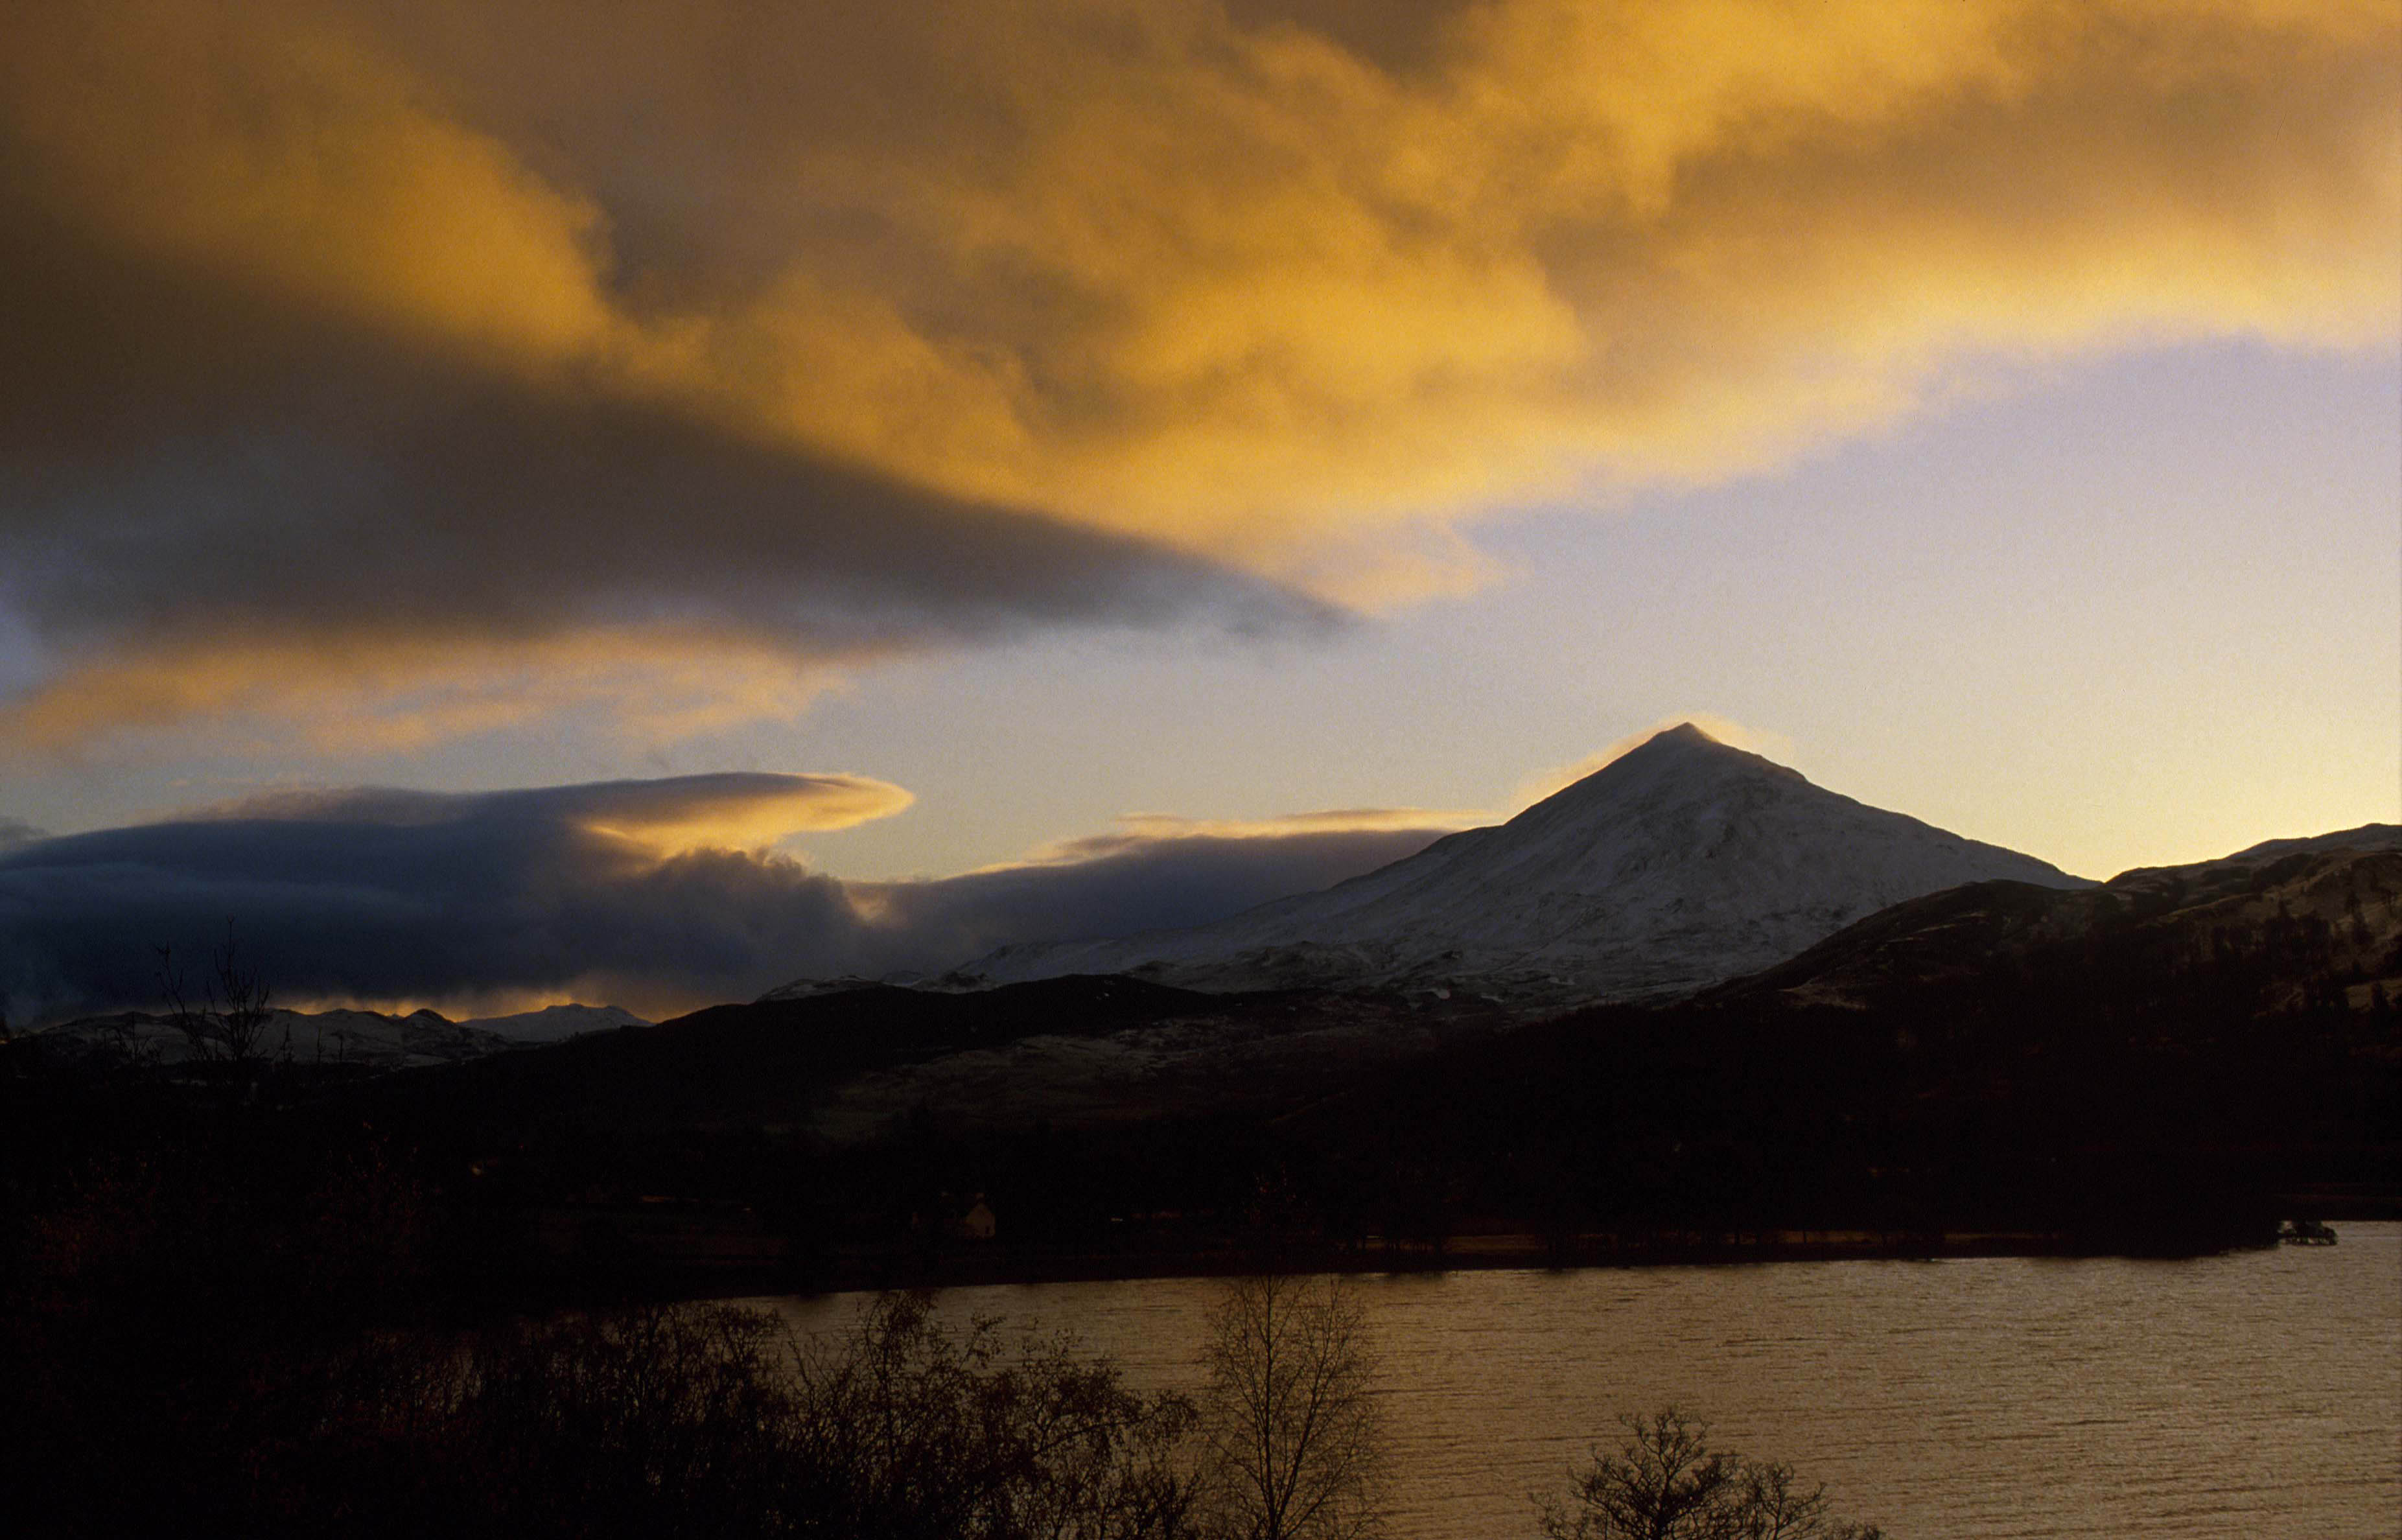 LOOKING OVER LOCH RANNOCH TO THE DISTINCTIVE CONICAL PEAK OF THE QUARTZITE MOUNTAIN OF SCHIEHALLION AT SUNRISE, PERTH & KINROSS © VisitScotland / Paul Tomkins, all rights reserved.